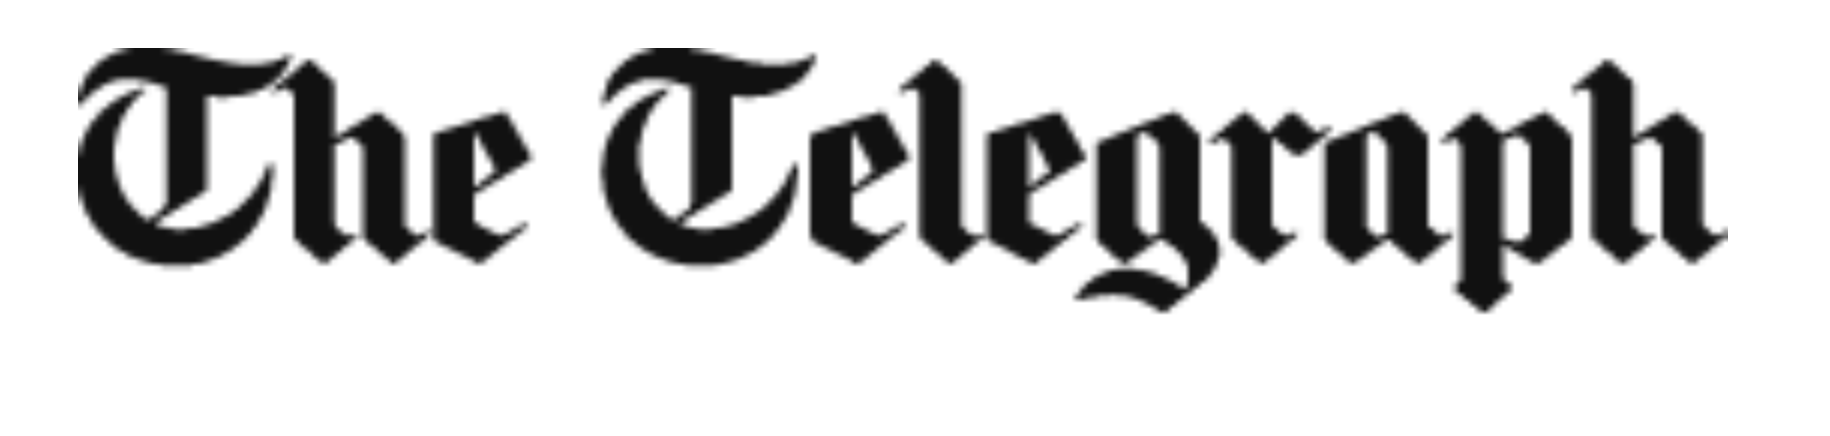 The Telegraph.png